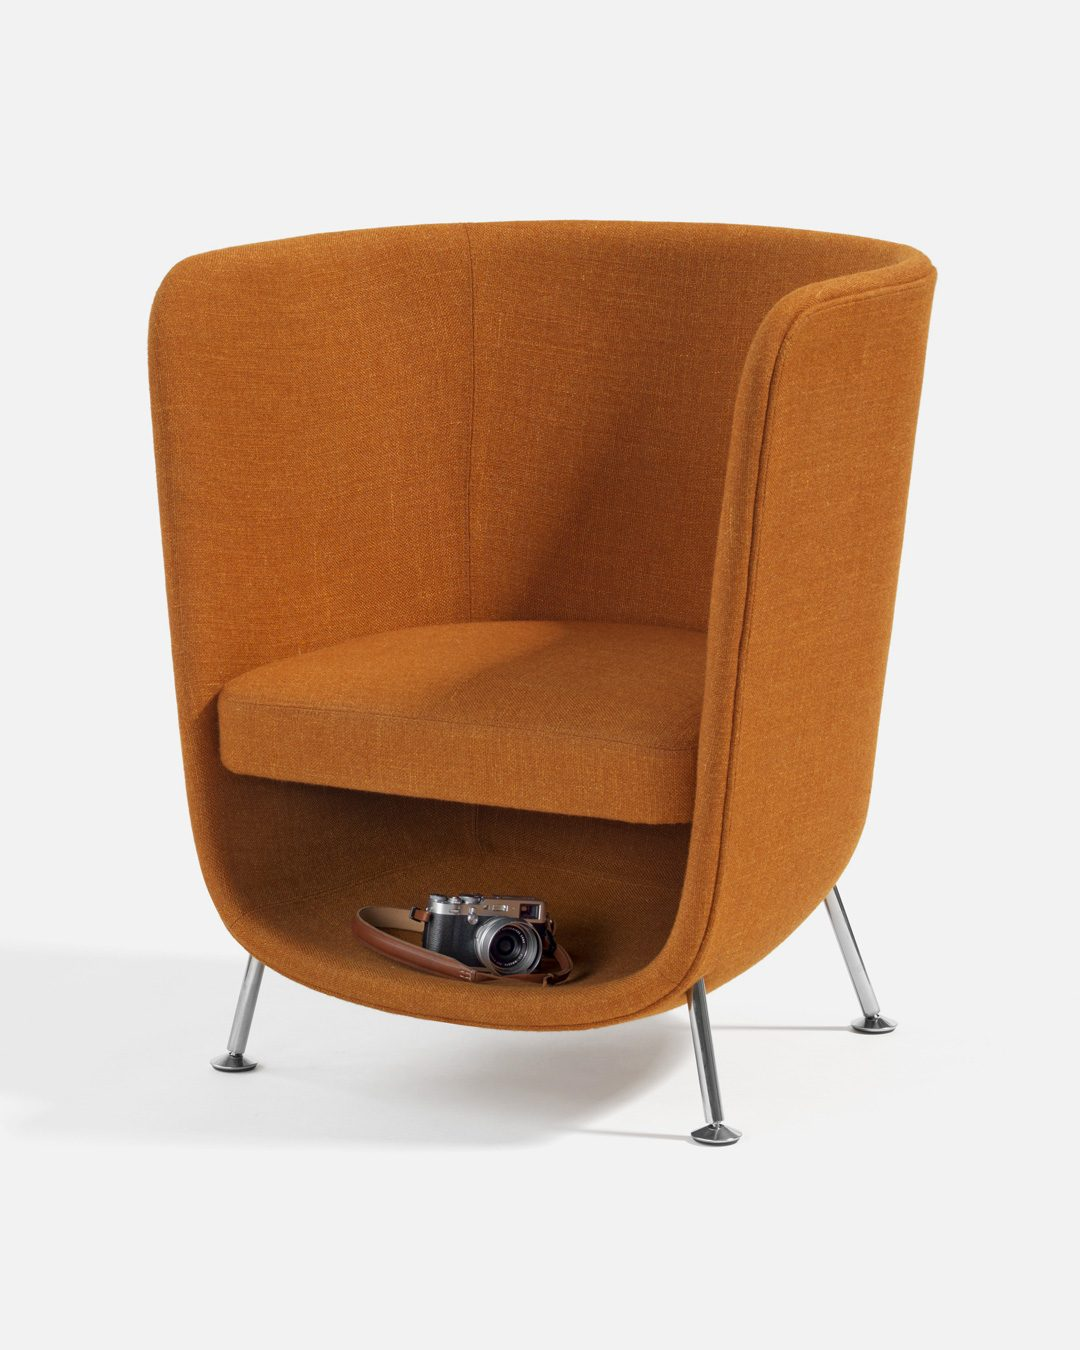 Pocket chair, furniture for cat and human, design for cats and humans cocooning